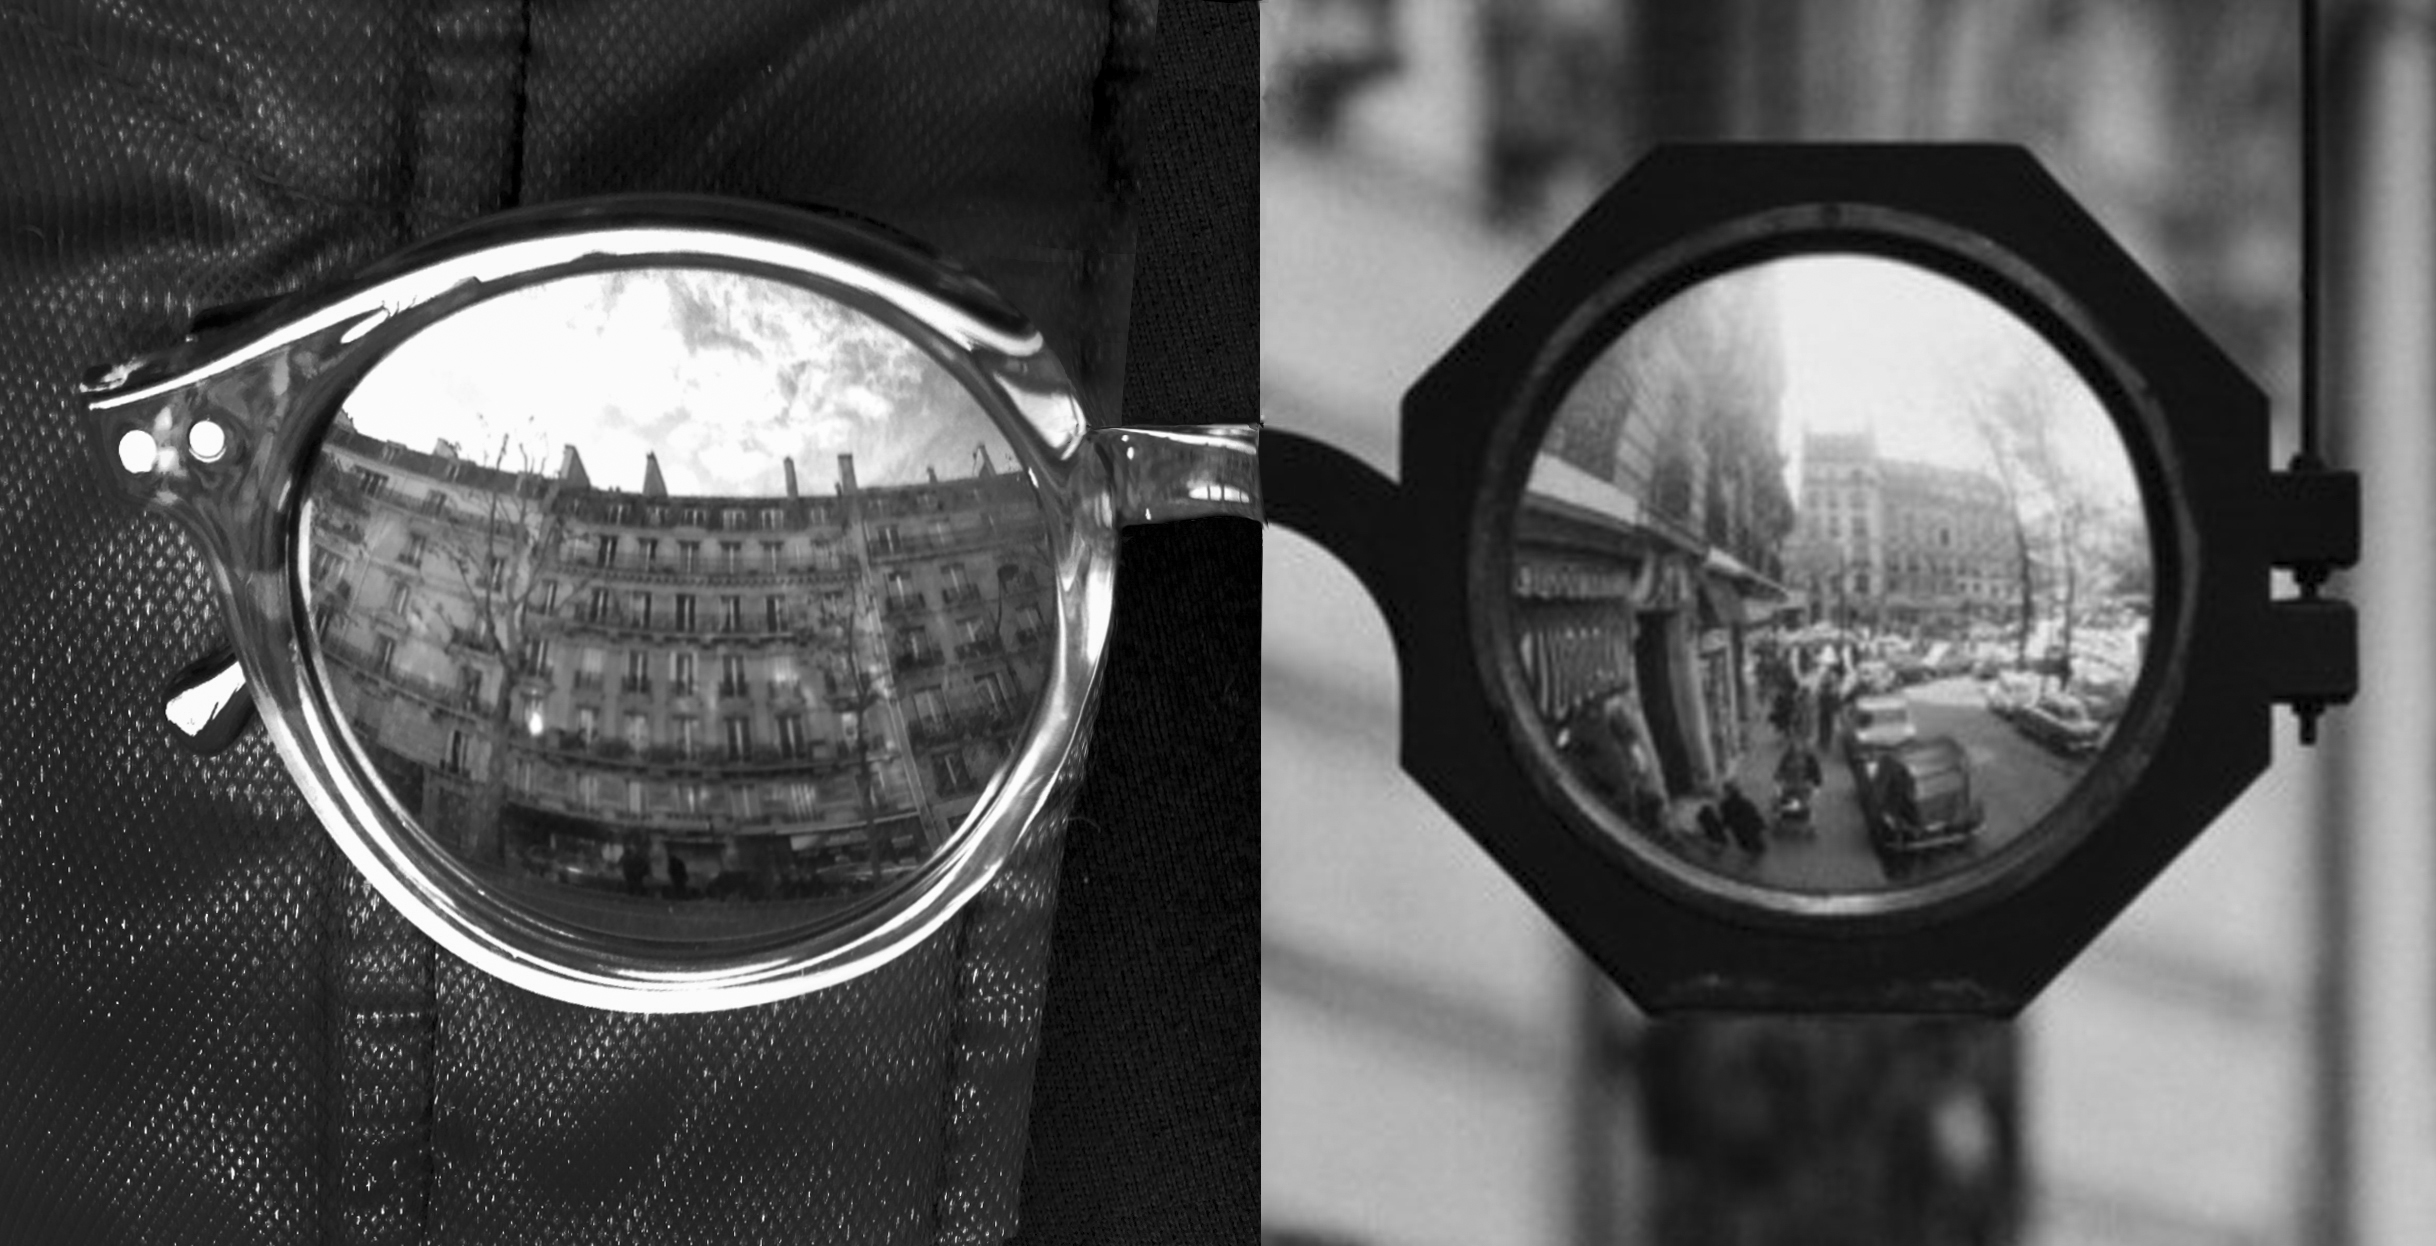 Left side is my photograph in 2012 and right side is Robert Doisneau's Lunettes Réflexion